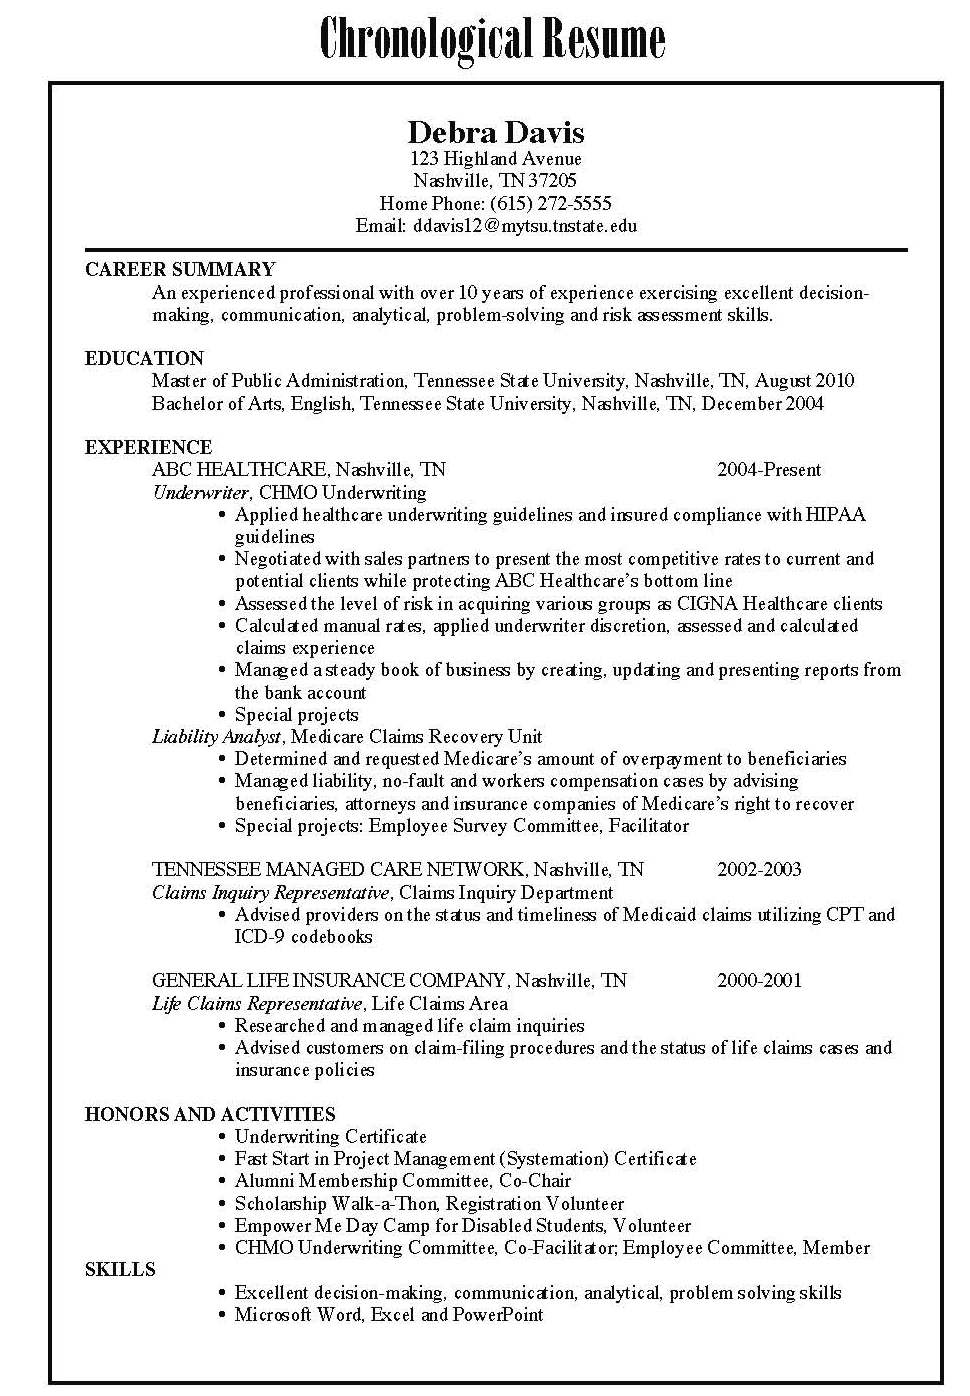 resume samples also